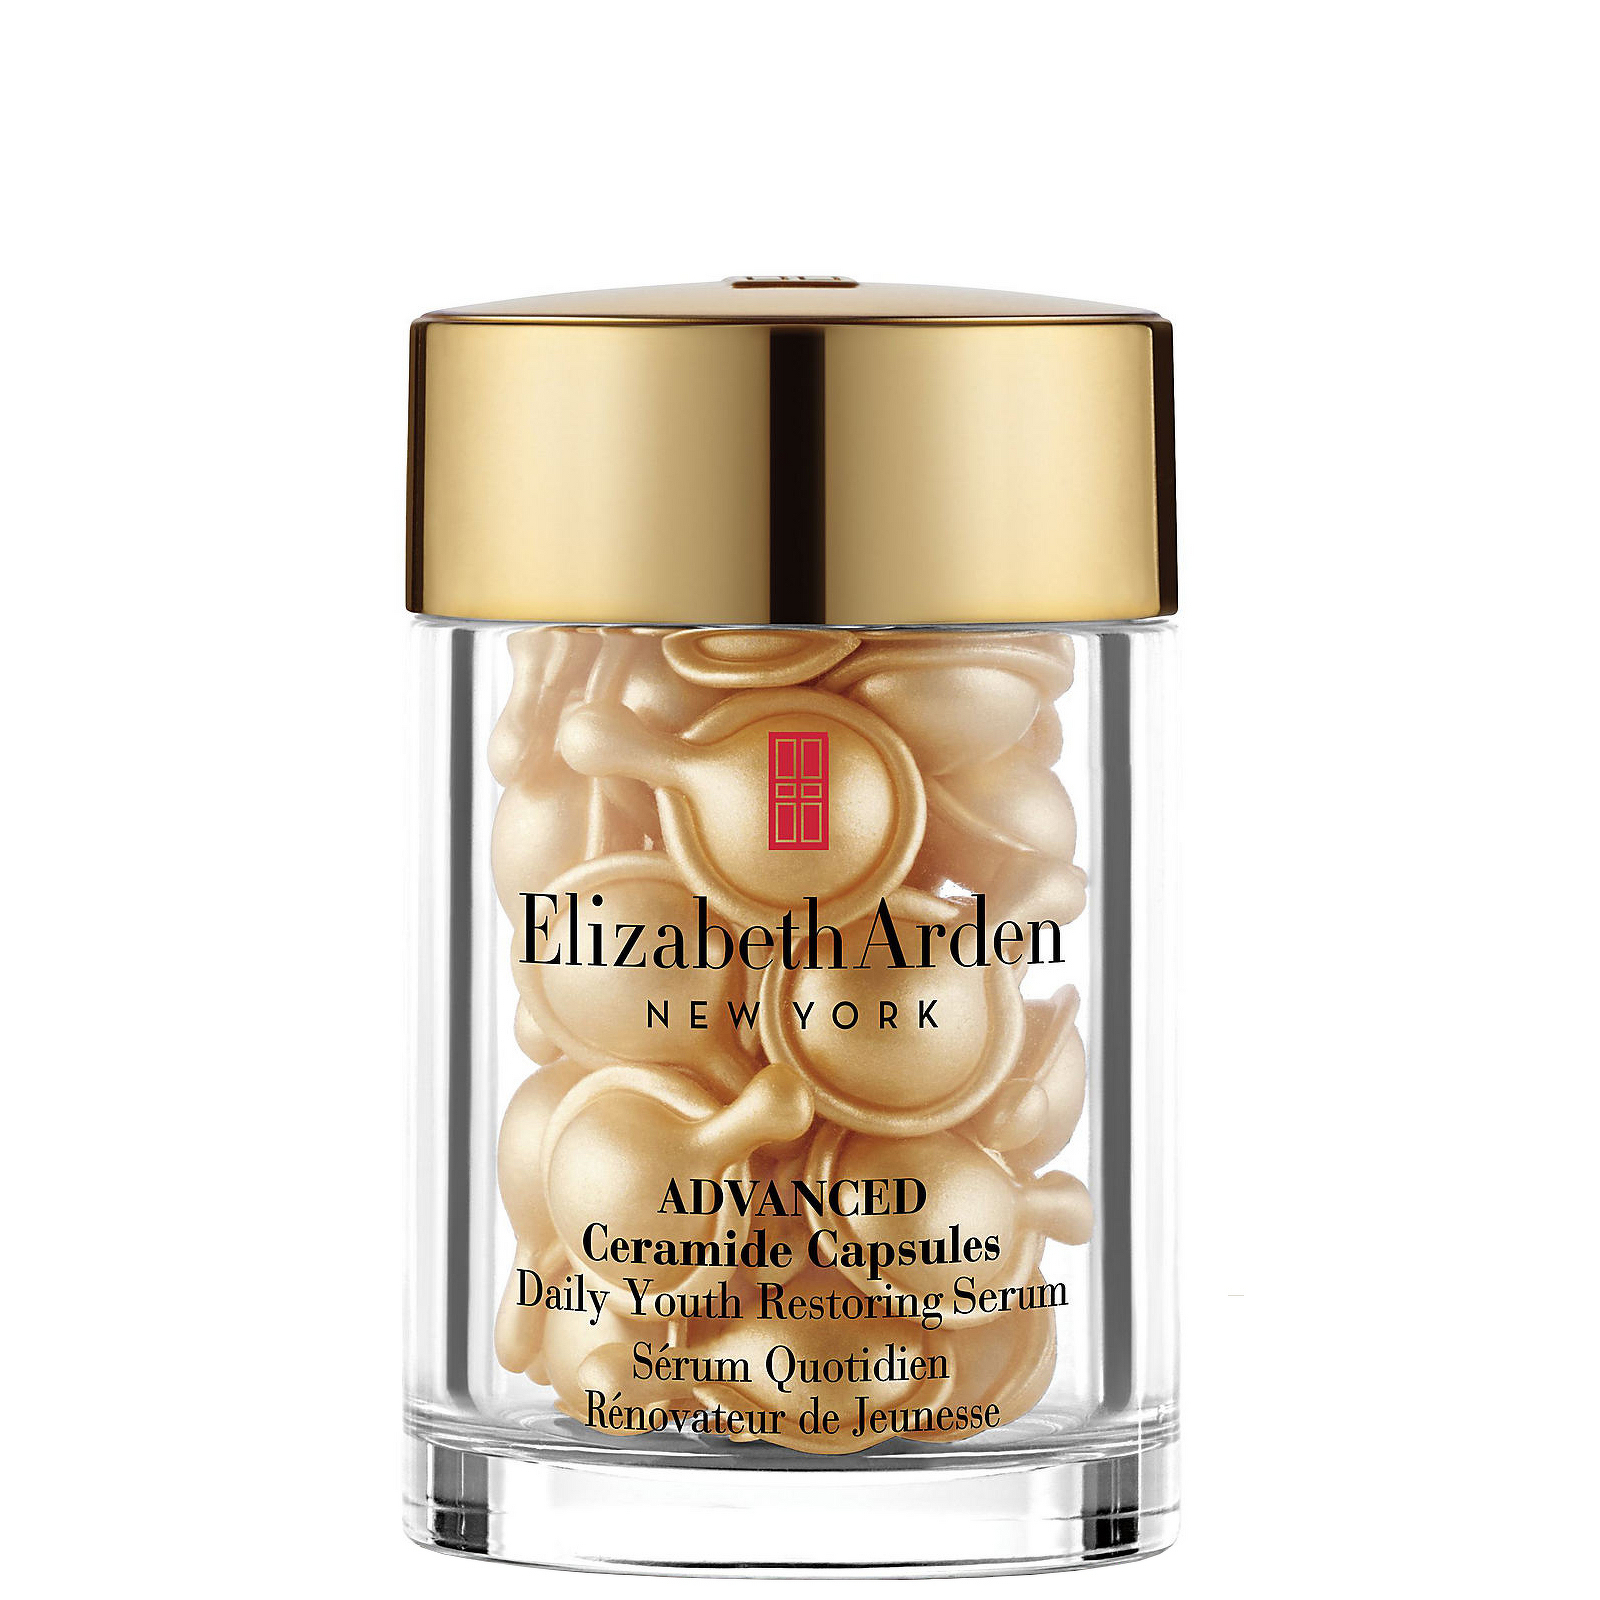 tinh-chat-elizabeth-arden-advanced-ceramide-capsules-daily-youth-restoring-serum-review-thanh-phan-gia-cong-dung